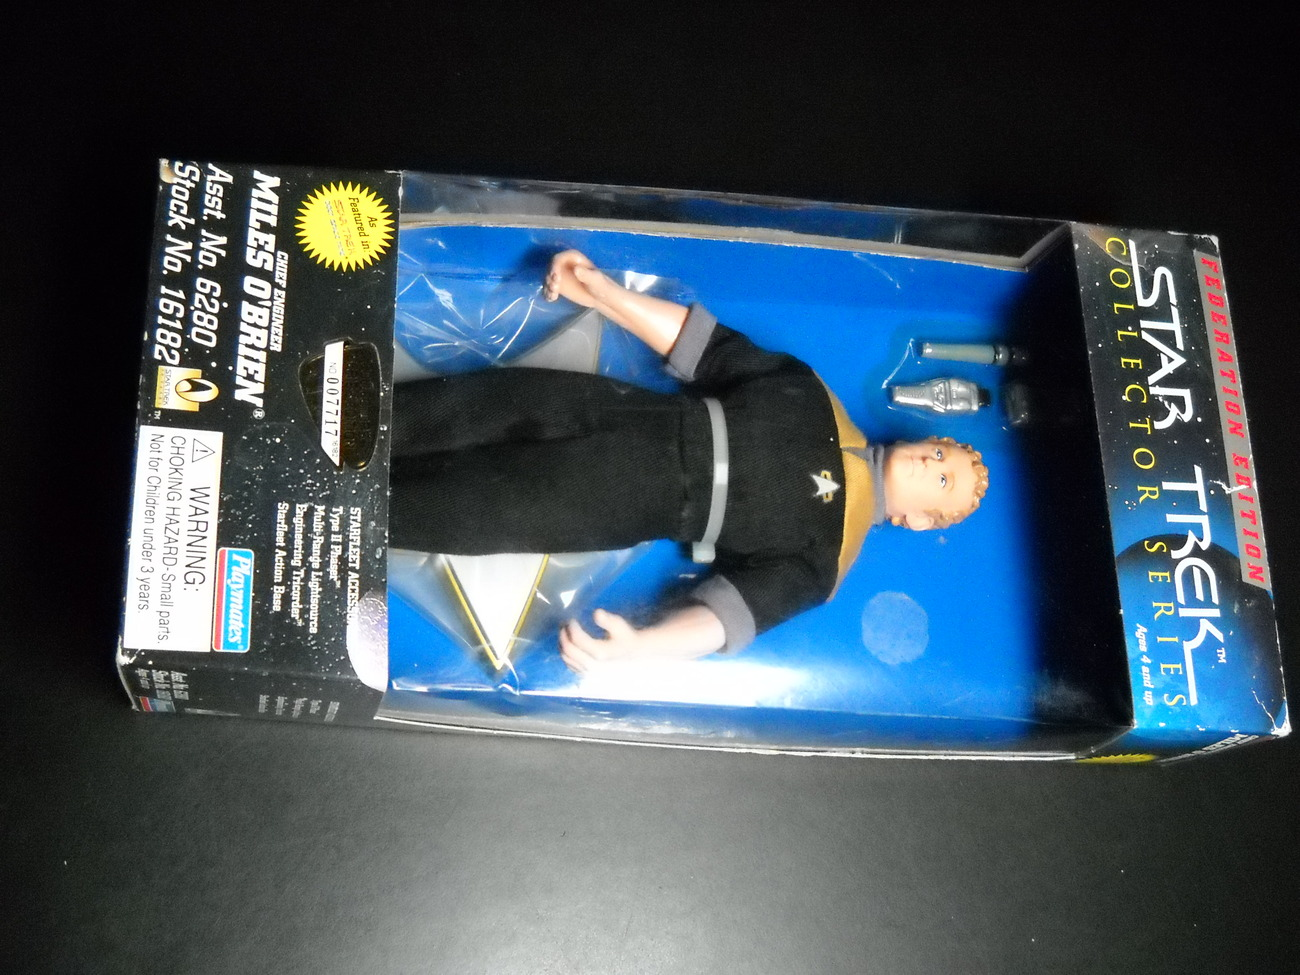 Toy star trek playmates federation edition chief engineer miles o brien 9 inch 1996 boxed sealed 01